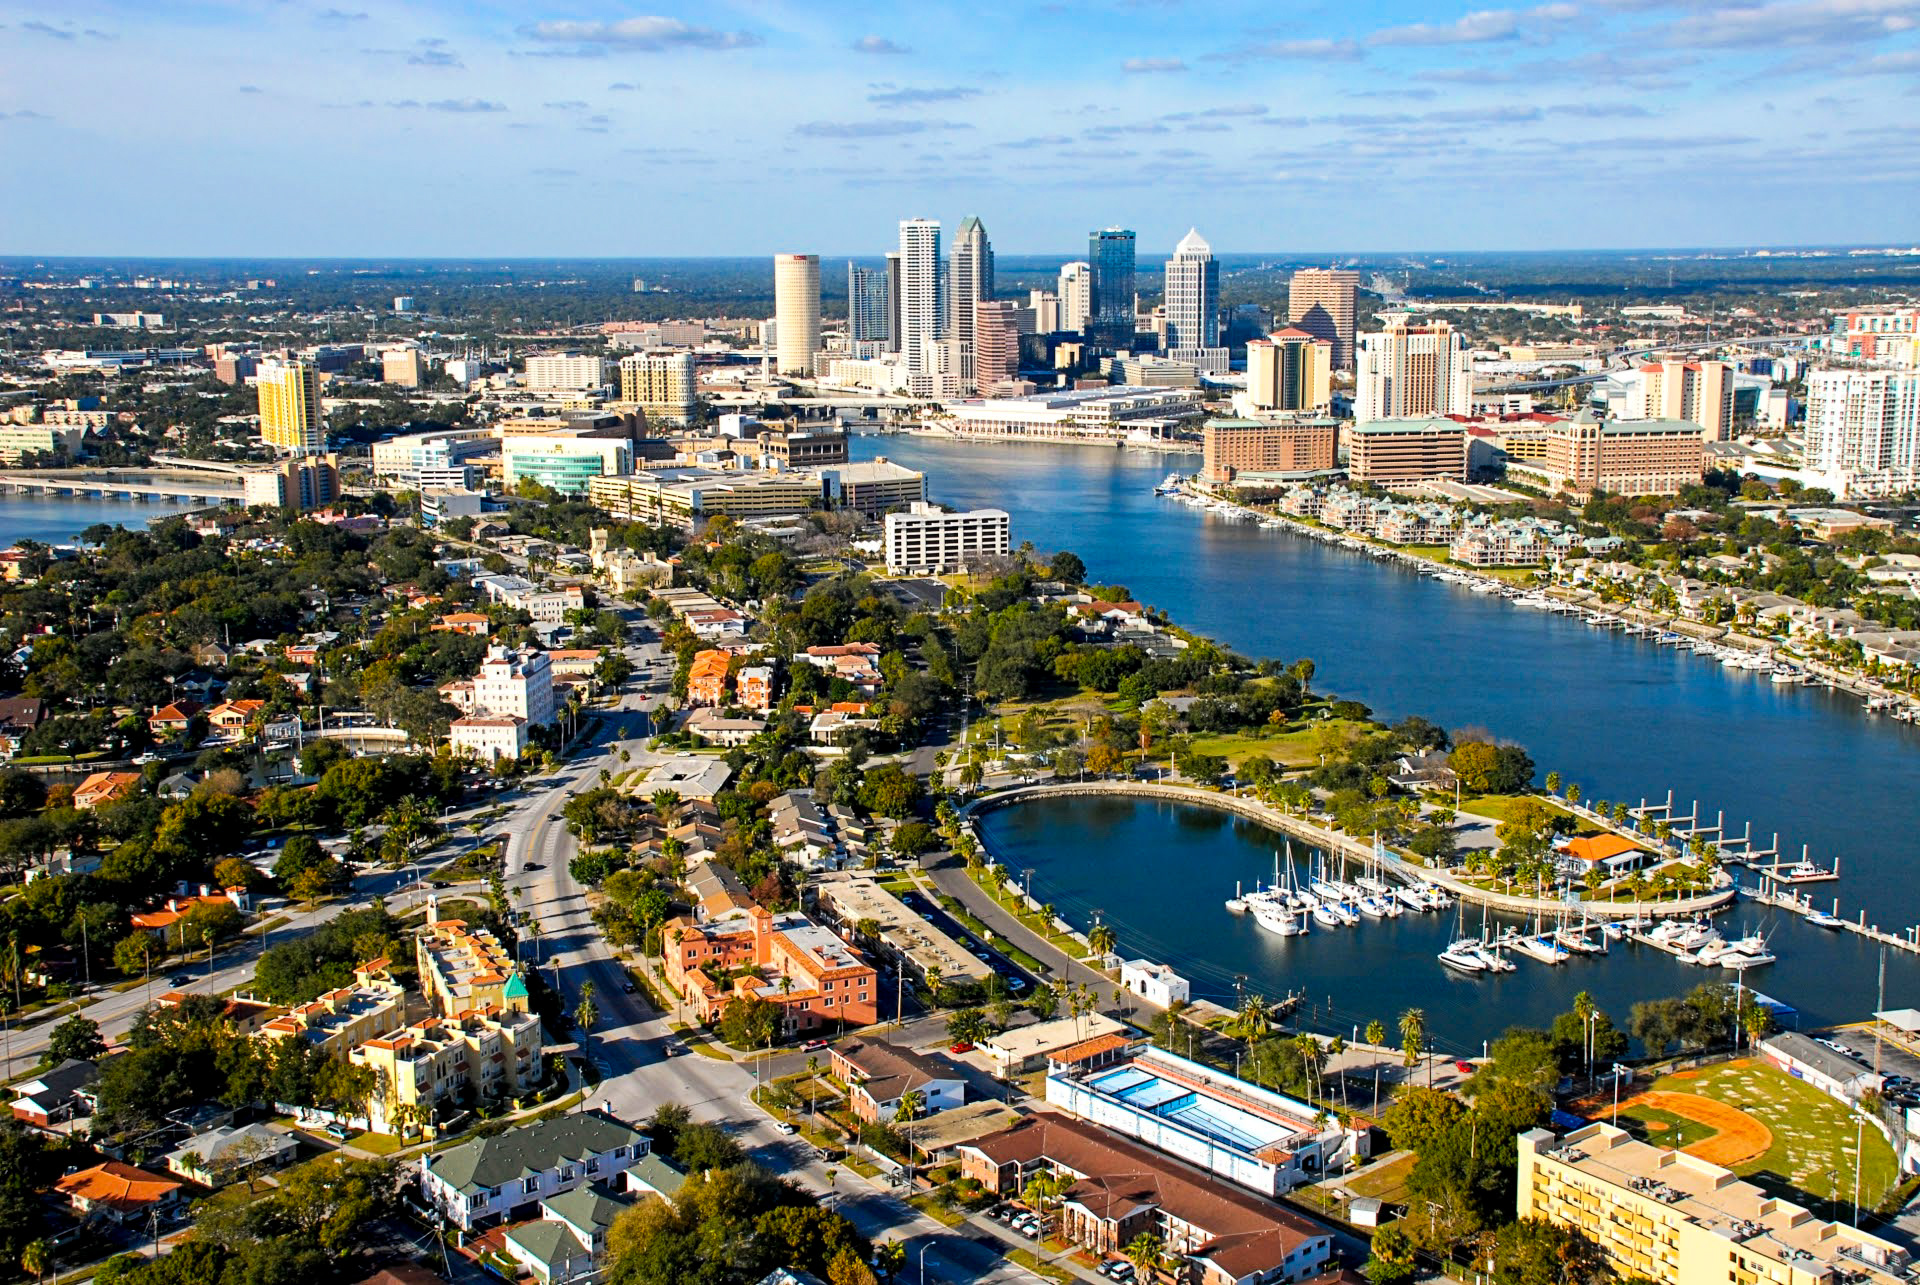 10. Davis Islands (Tampa, Florida)